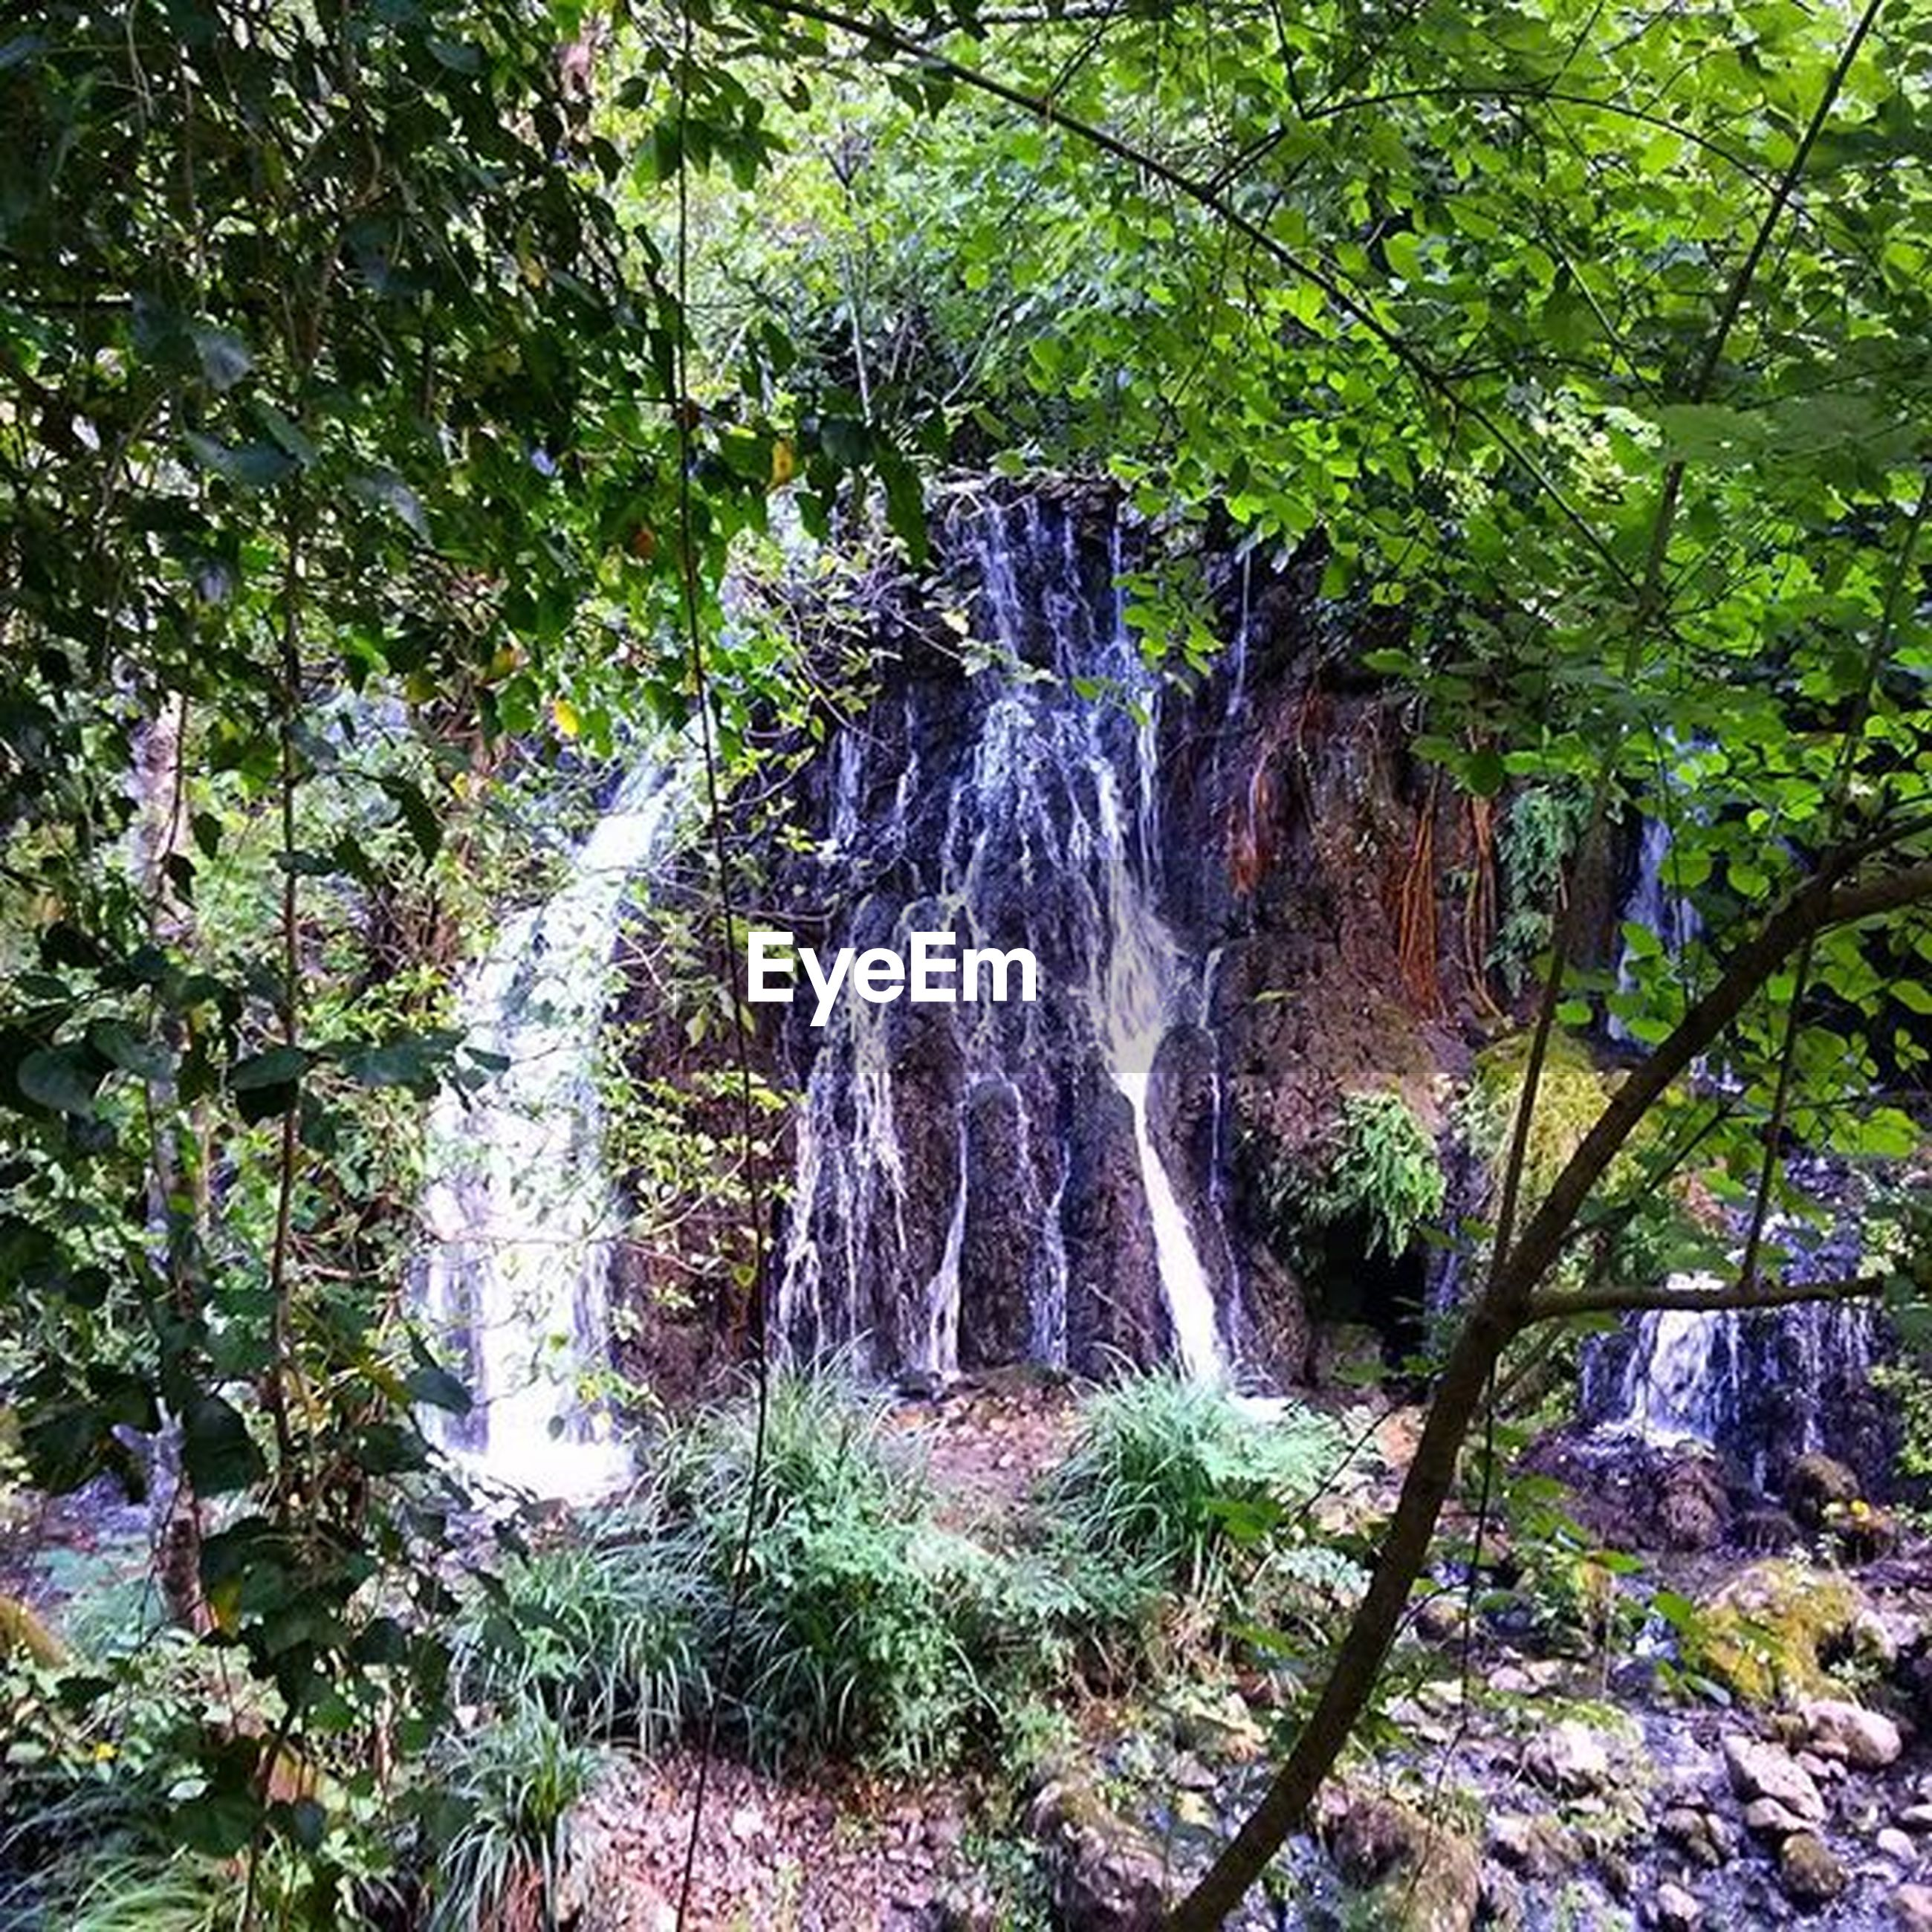 water, waterfall, beauty in nature, forest, tree, nature, flowing water, growth, motion, scenics, rock - object, plant, flowing, long exposure, tranquility, tranquil scene, day, idyllic, outdoors, no people